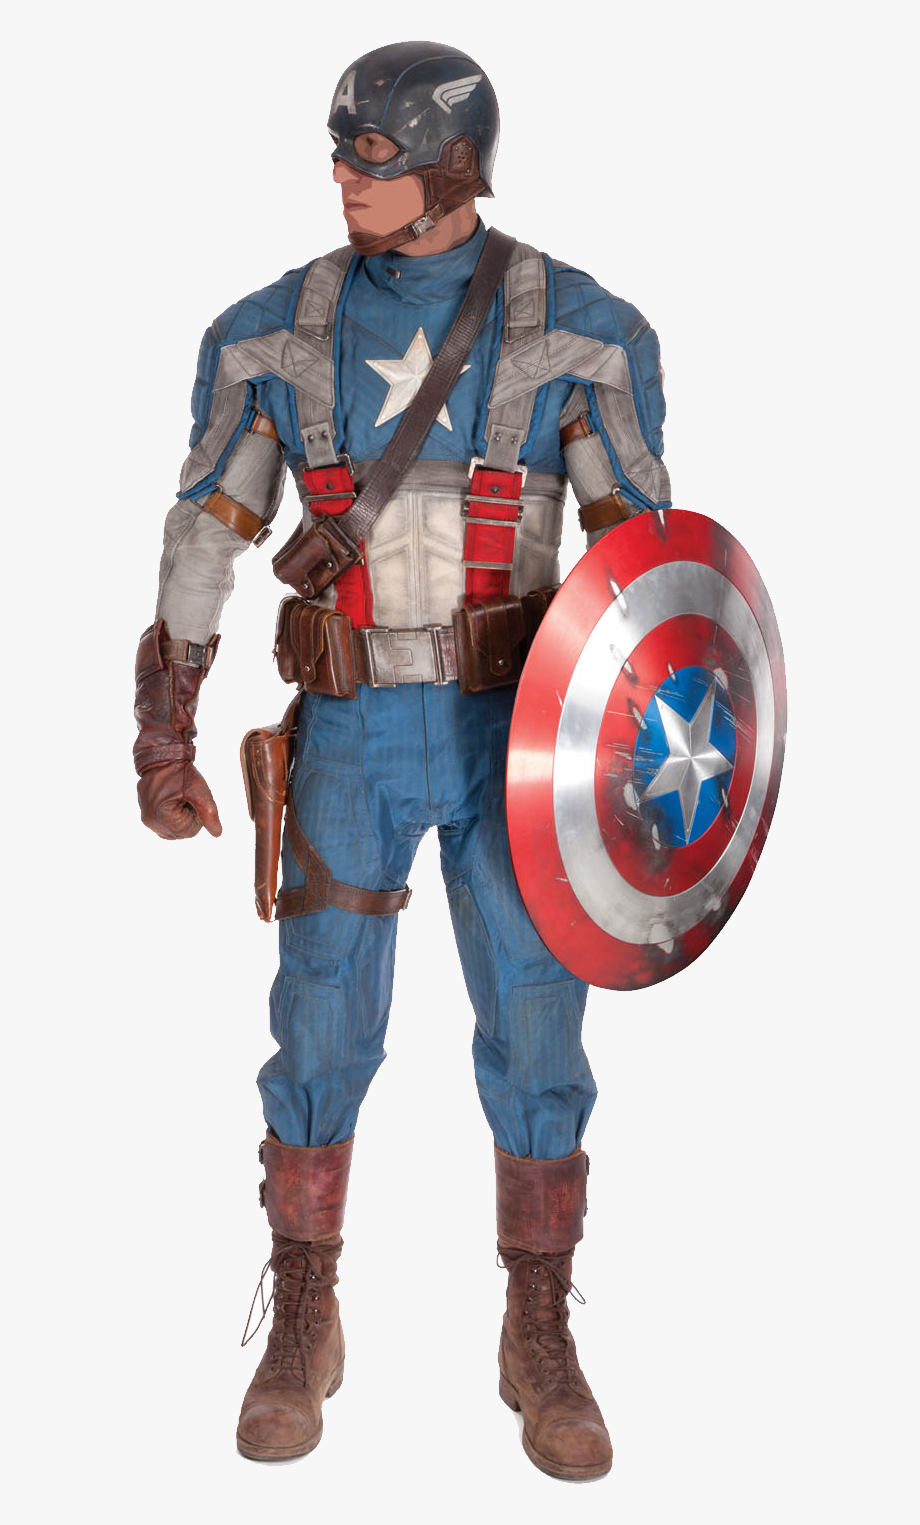 clipart library download Captain america the first. Avengers clipart action figure.